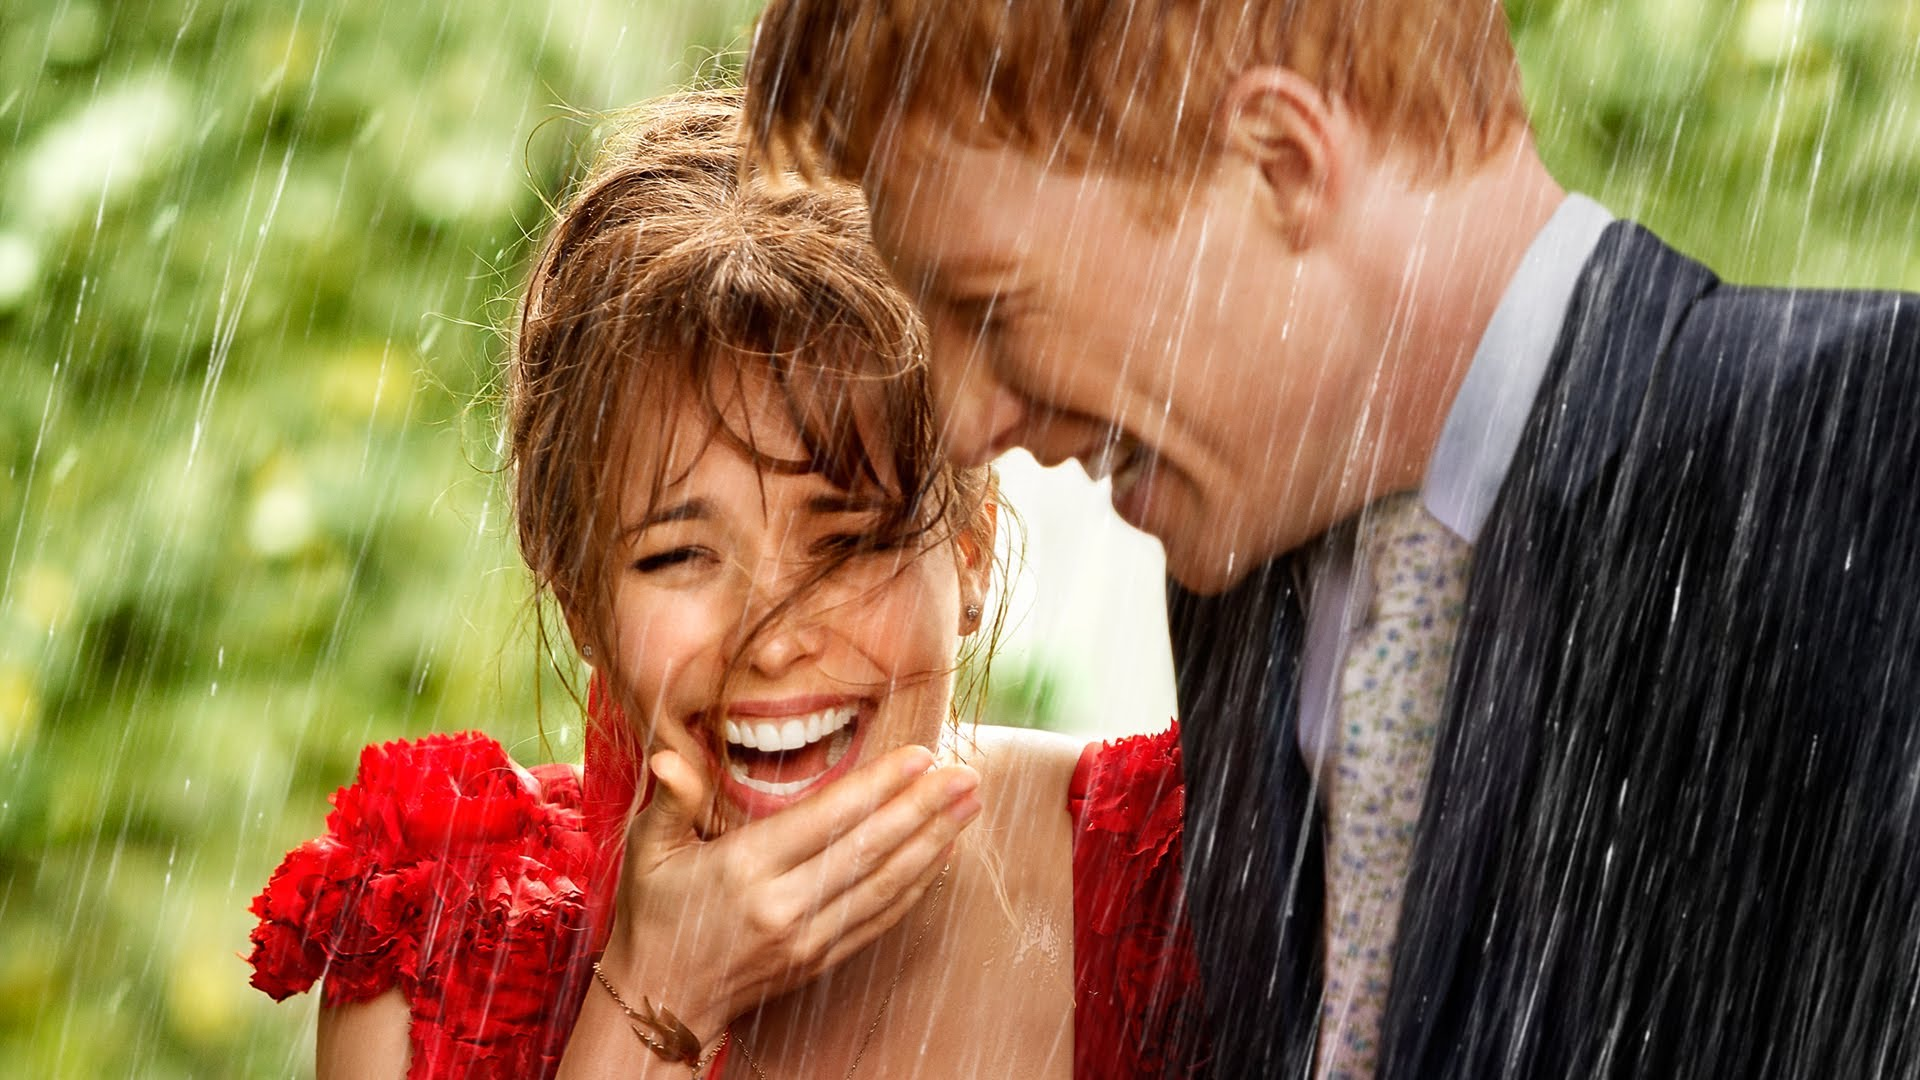 abouttime - LILITHIA REVIEWS